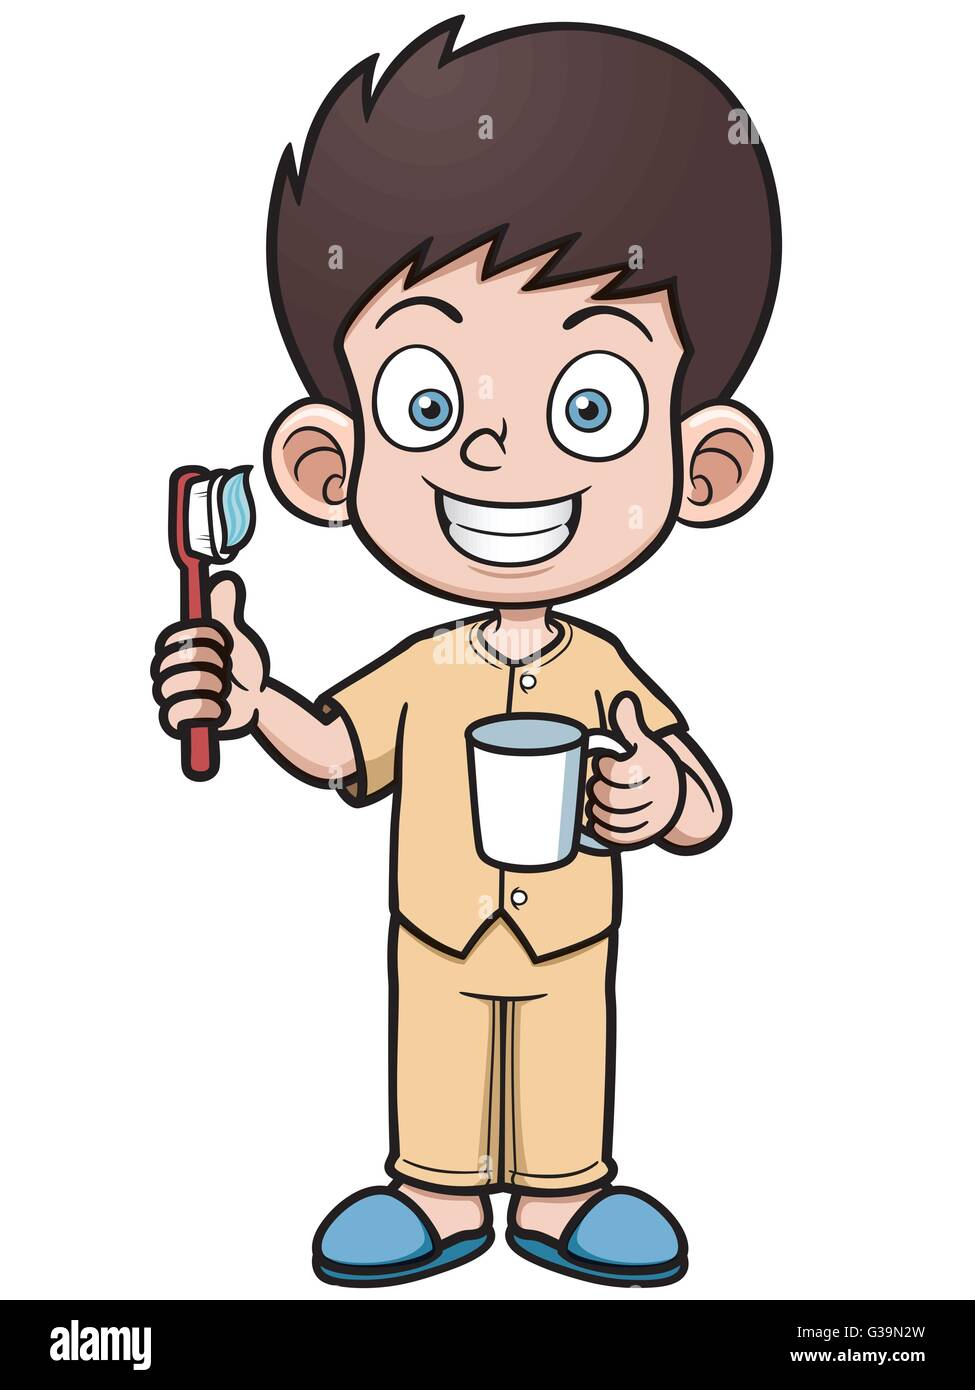 vector illustration of boy brushing his teeth stock vector art